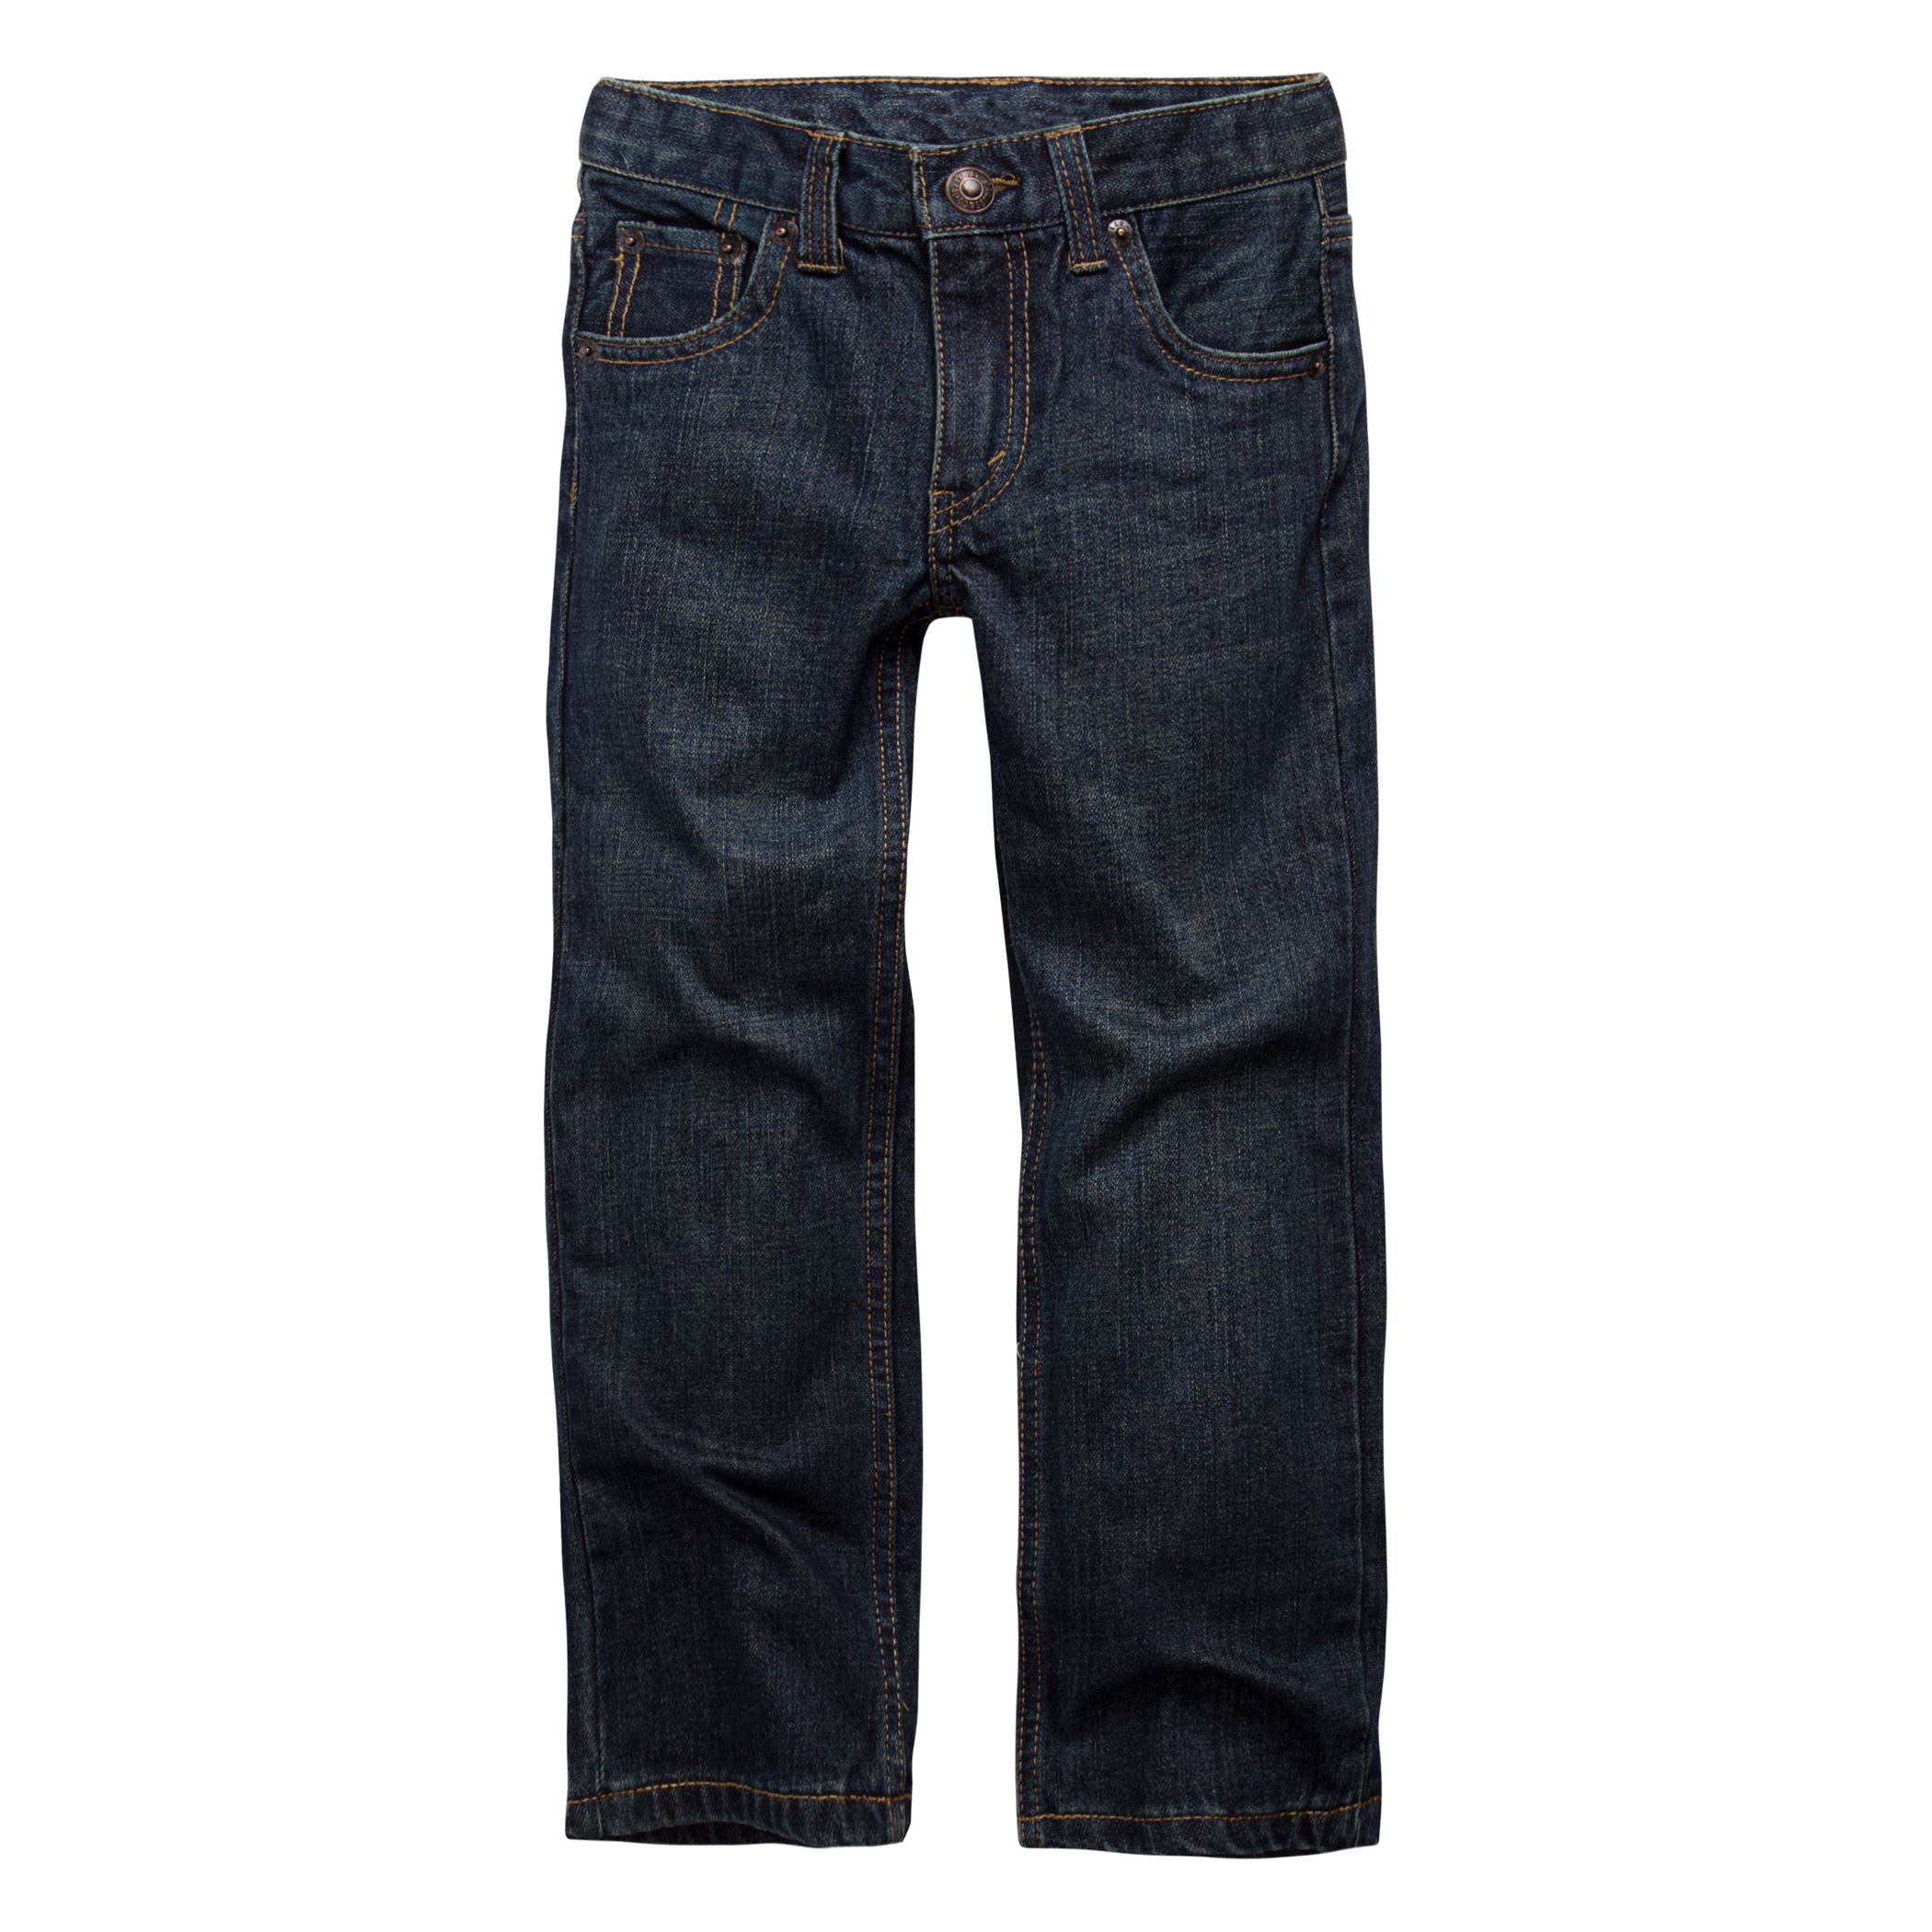 Levi's 505® Straight Fit Jeans| Swains Port Angeles